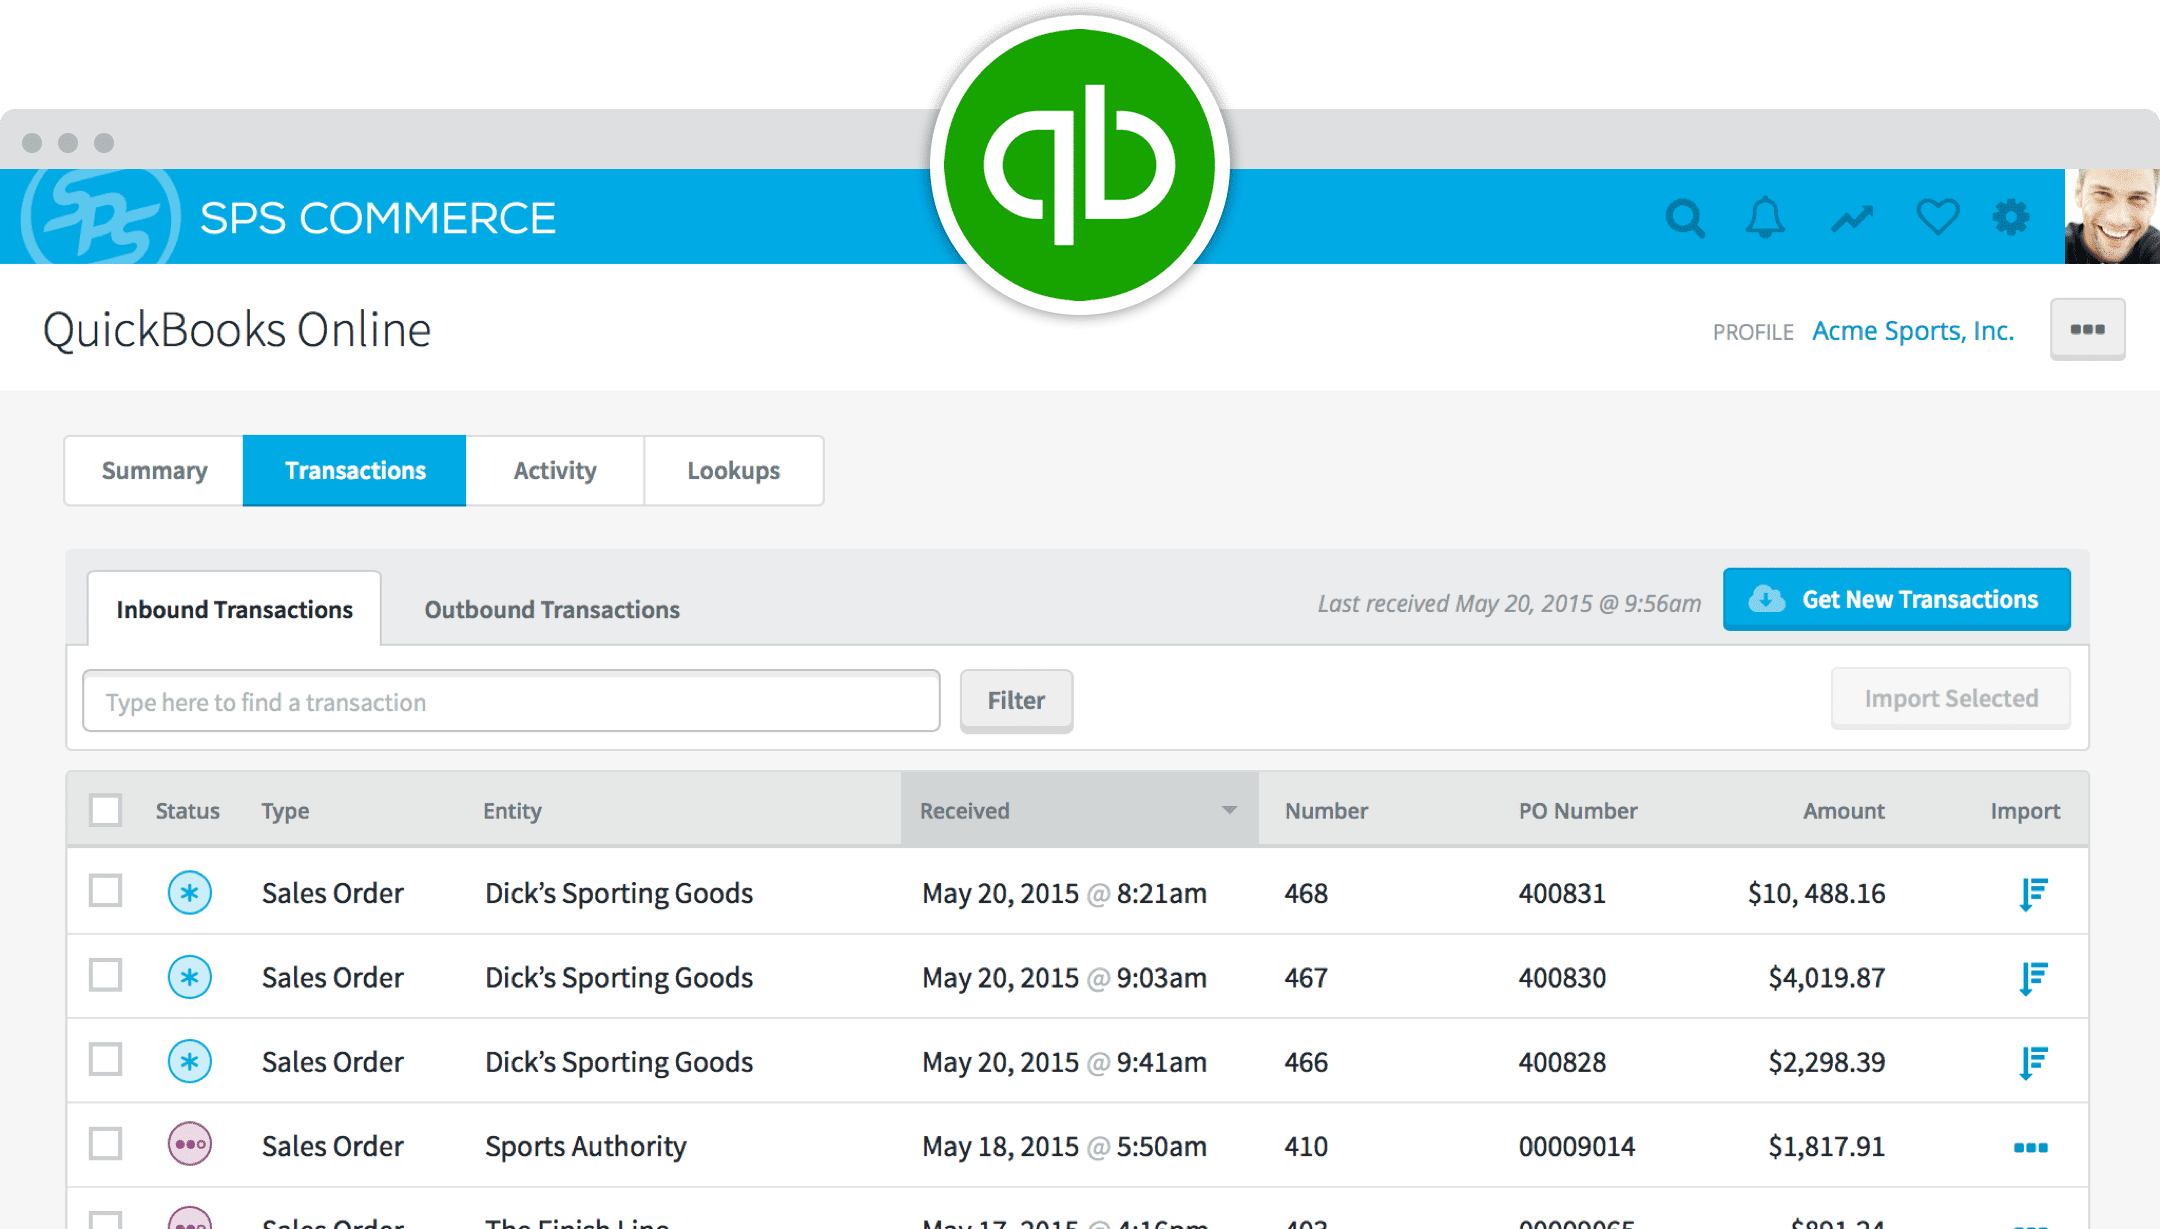 Quickbooks EDI integration. Manage your Quickbooks purchase orders, ship notices, and more